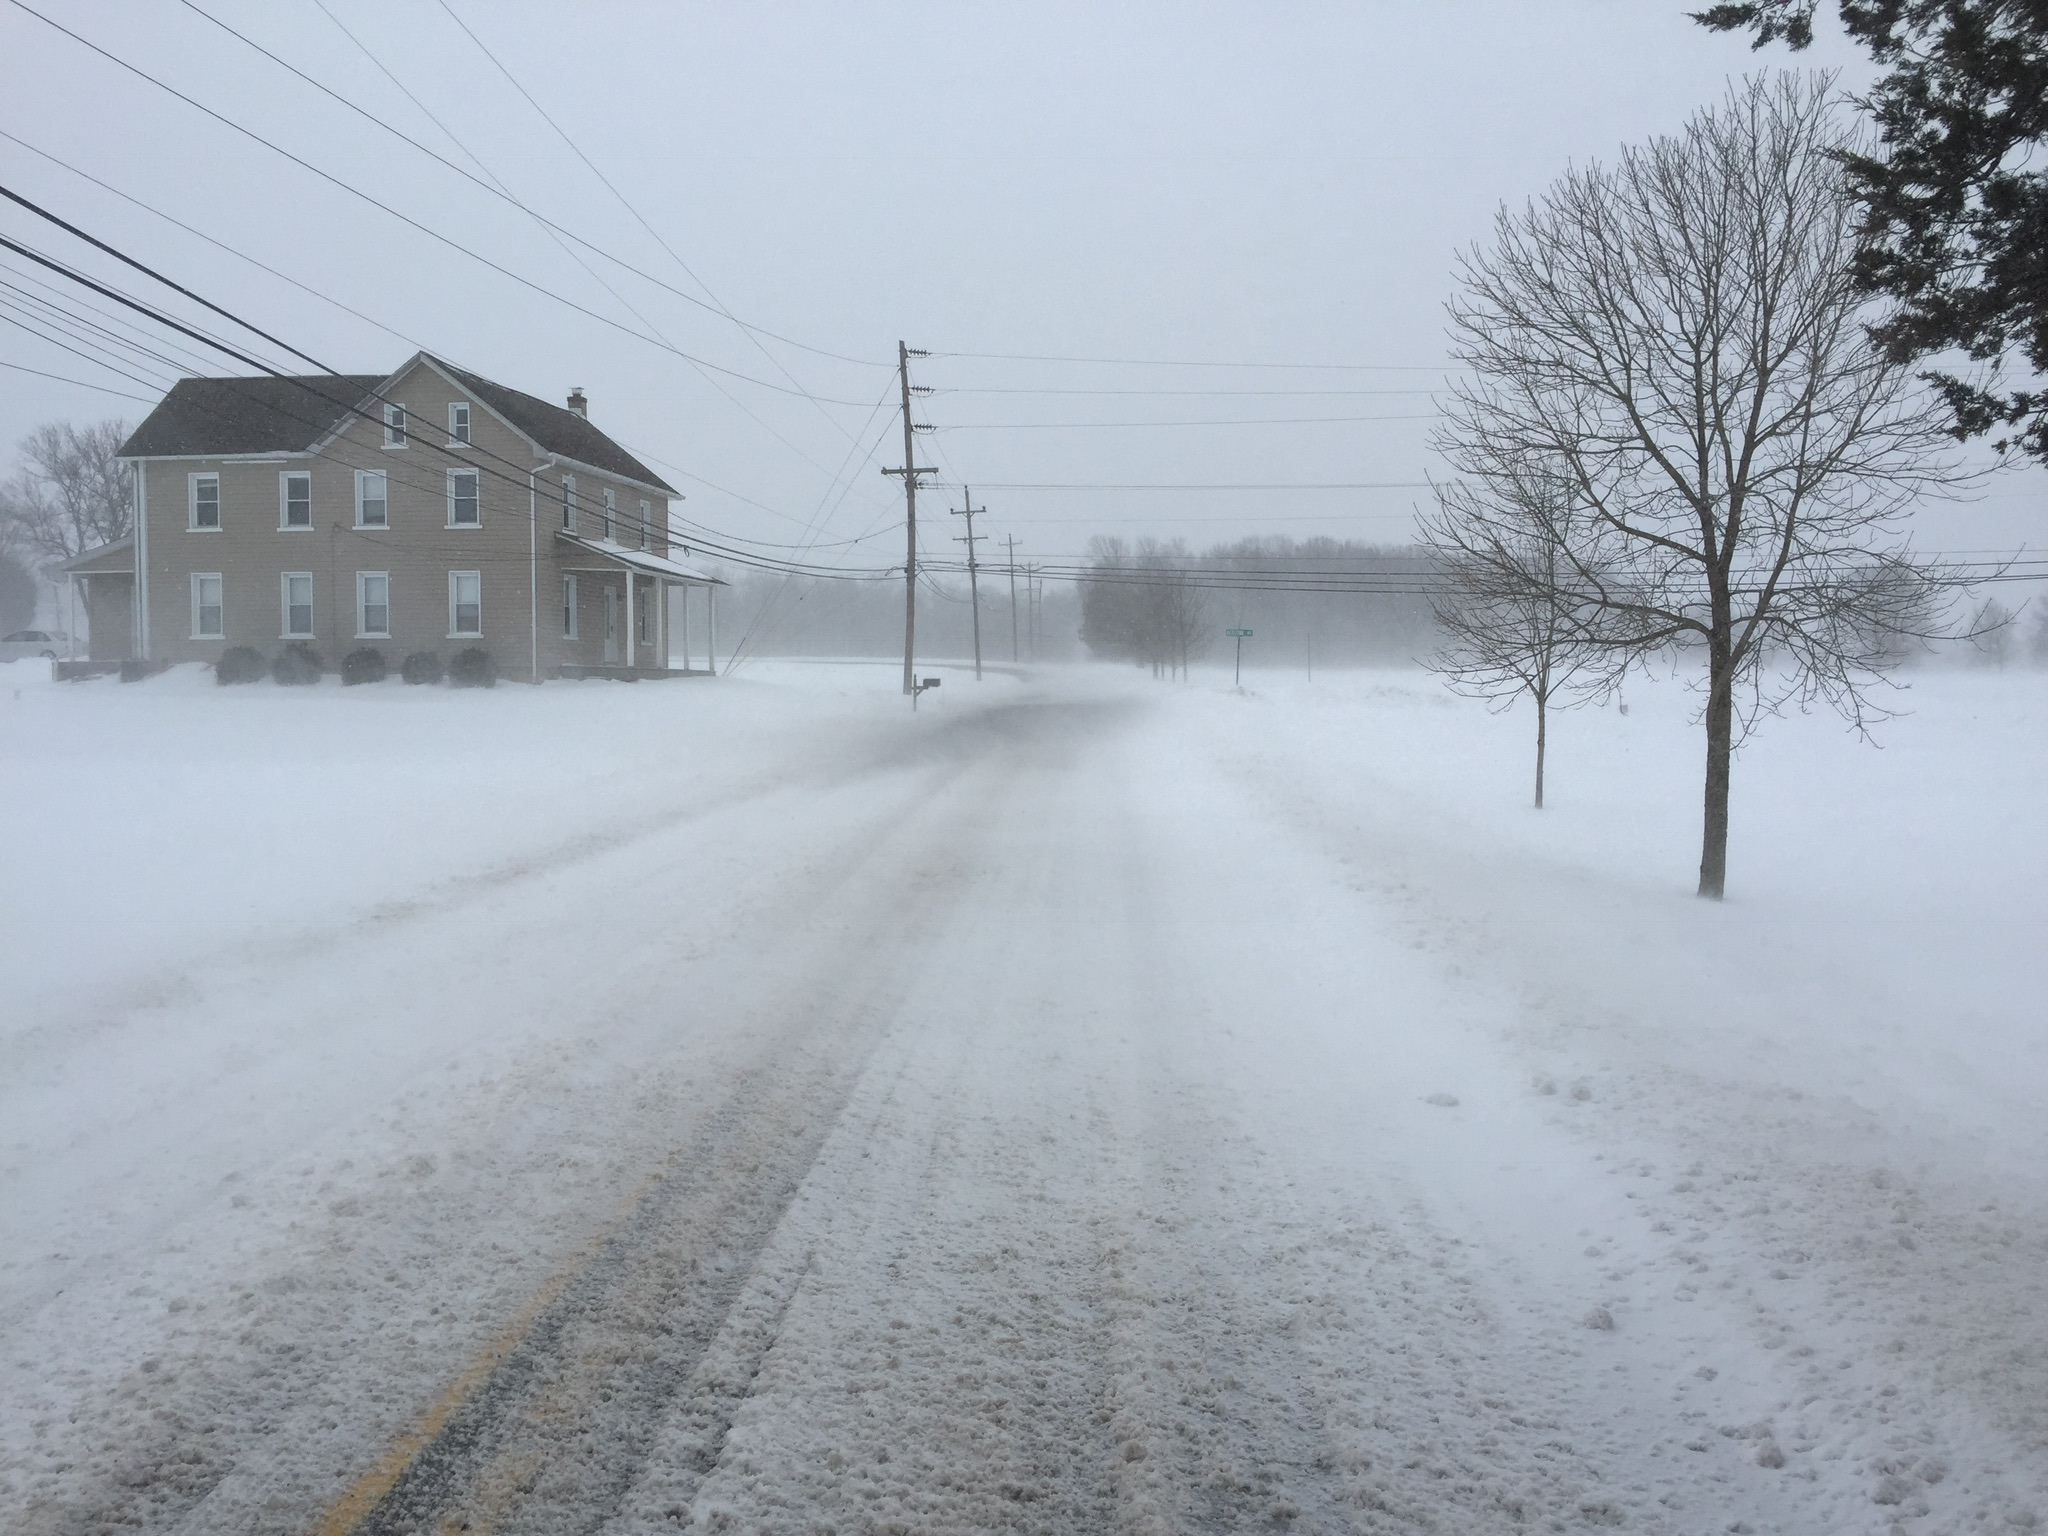 The crosswind covered the whole road from right to left while the road curled off to the left, creating a tailwind.